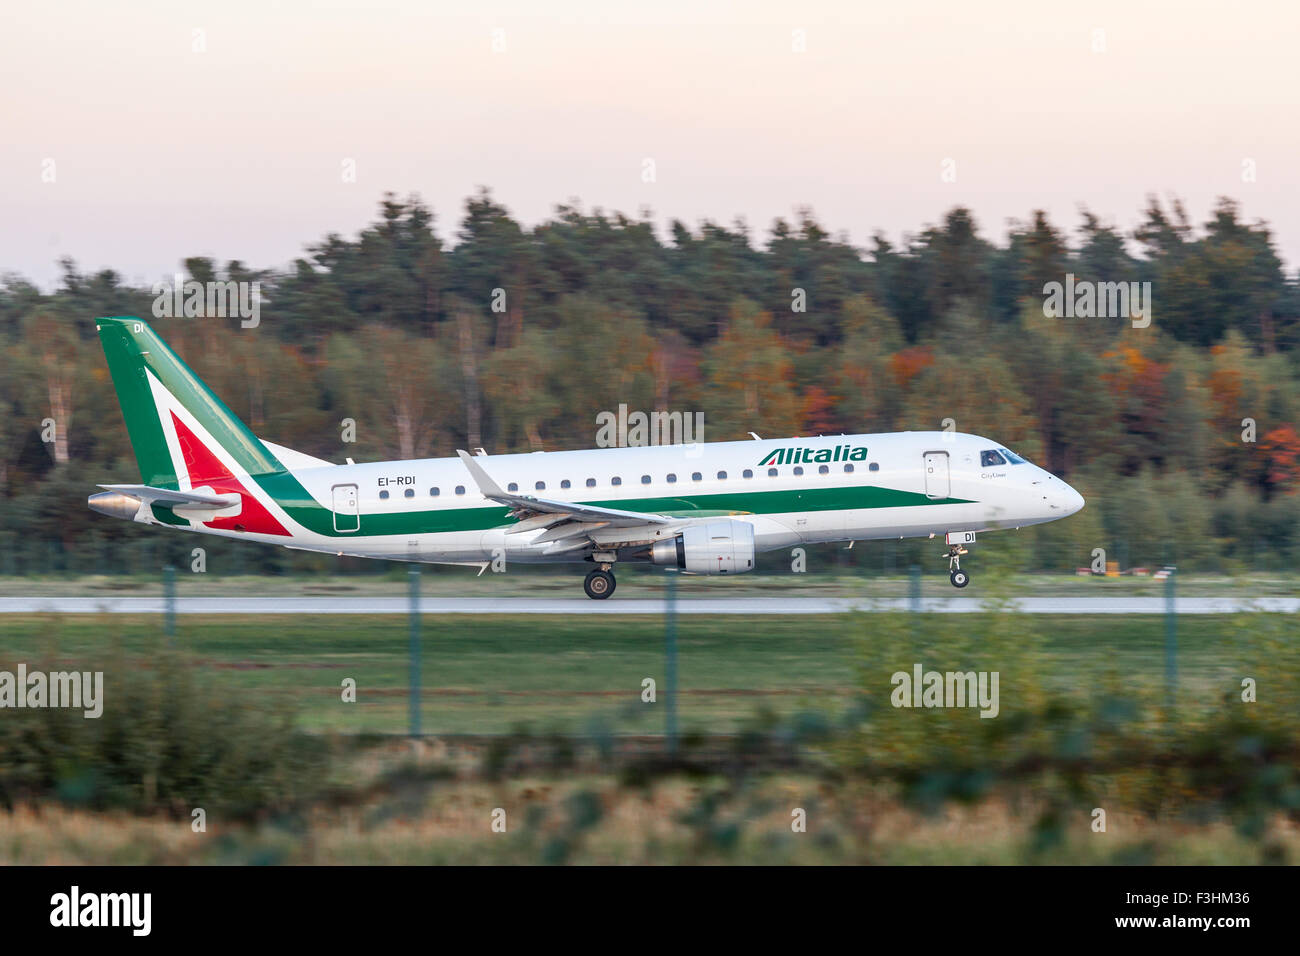 Alitalia Embraer 170 at the runway of Frankfurt International Airport - Stock Image